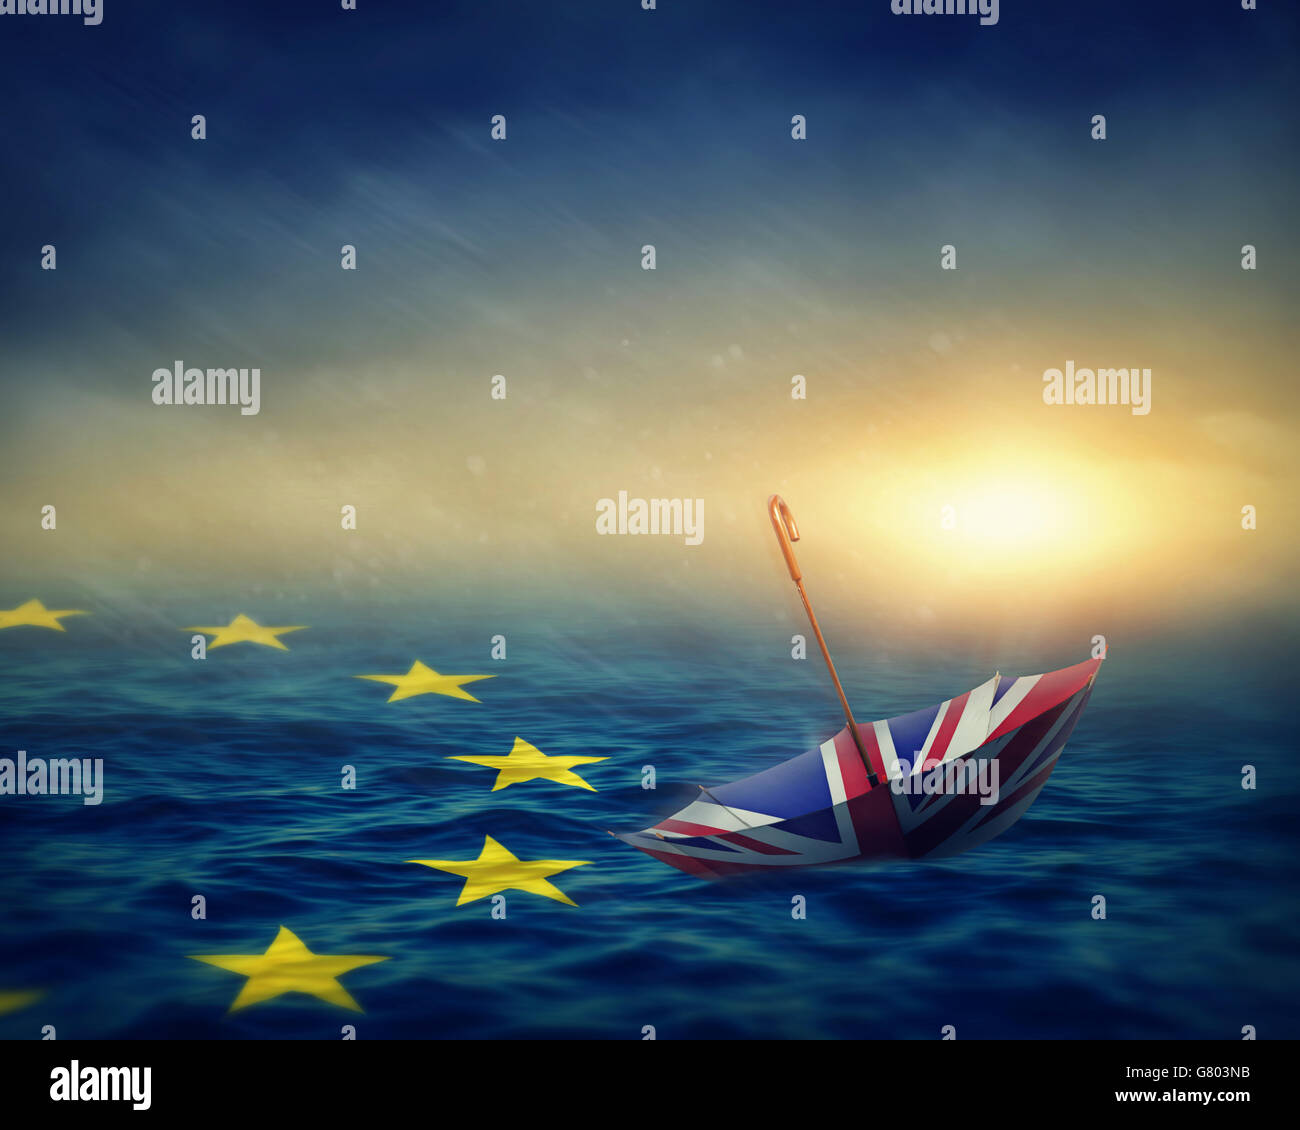 Umbrella with the flag of the United Kingdom and sea with the flag European Union.Brexit concept. - Stock Image